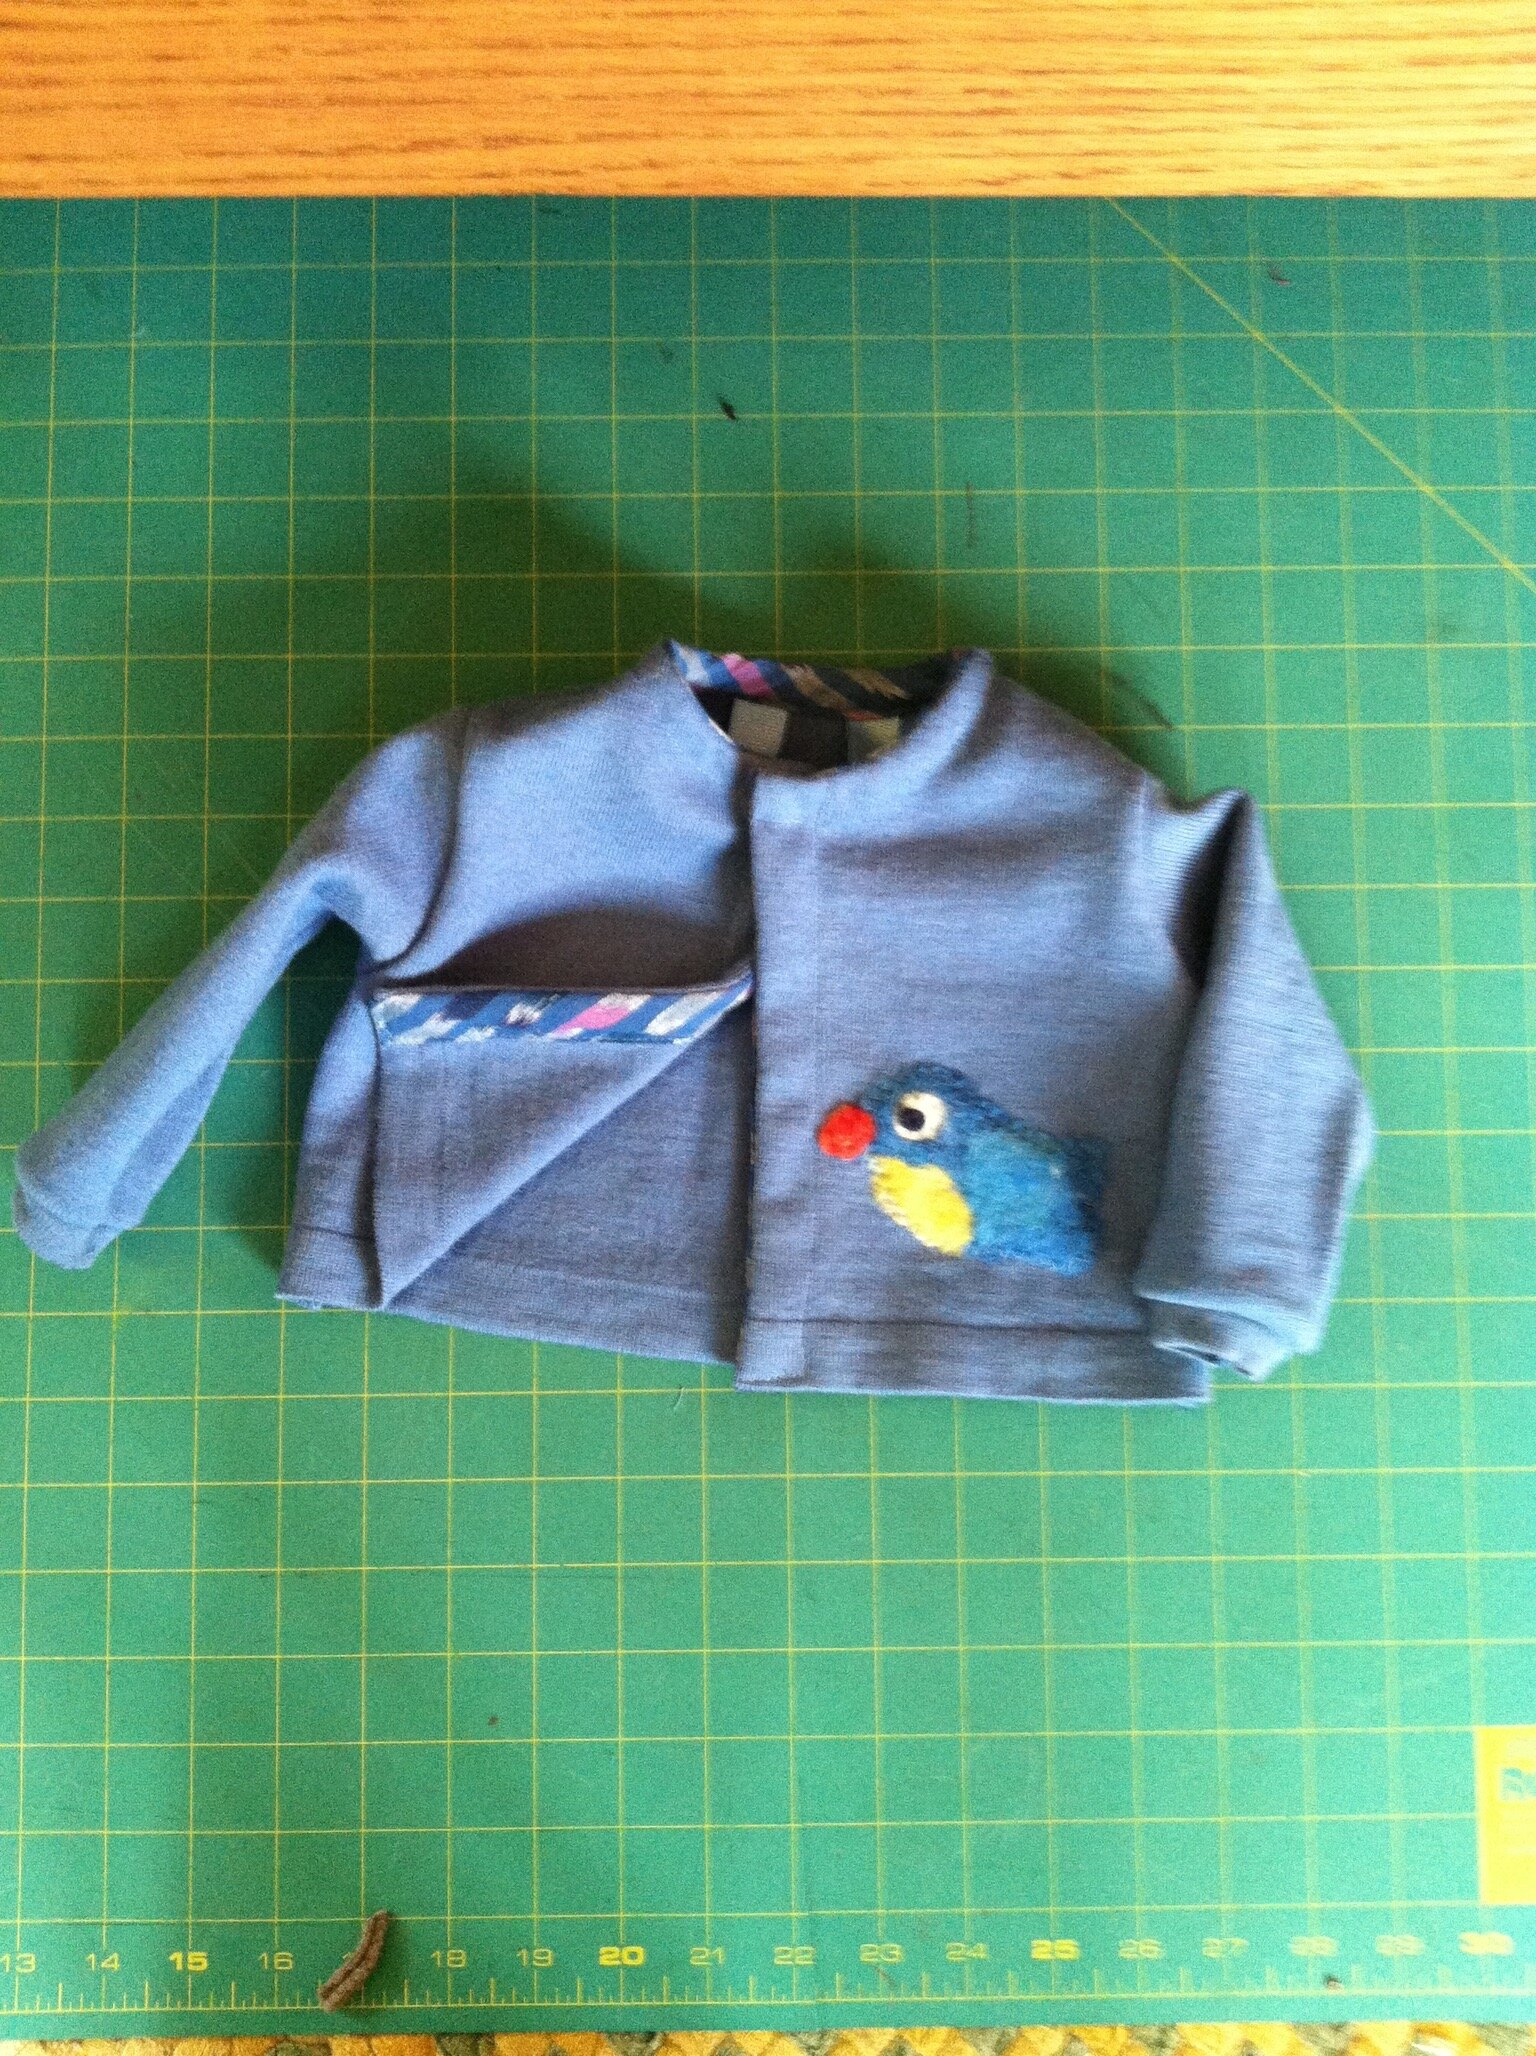 Moth eaten merino wool sweater up-cycled into a baby sweater with felted bird just for fun